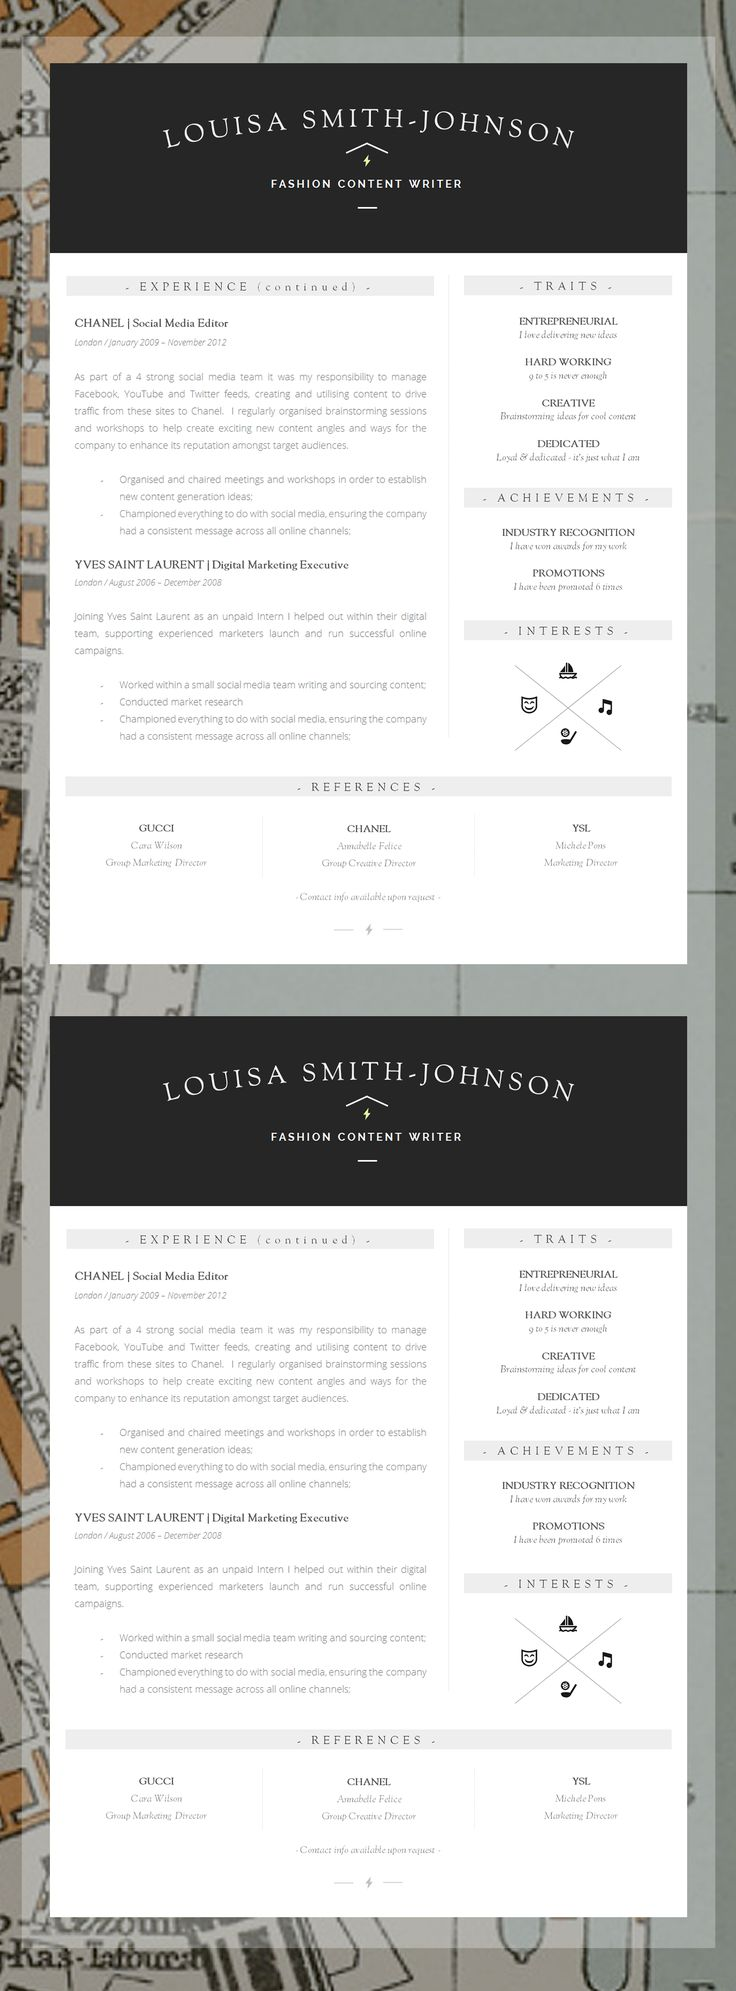 You only have one chance to make a first impression - Editable Resume Templates For Word | CV Templates | Professional Job Applications I #InformationDesign #CV #Job #Resume